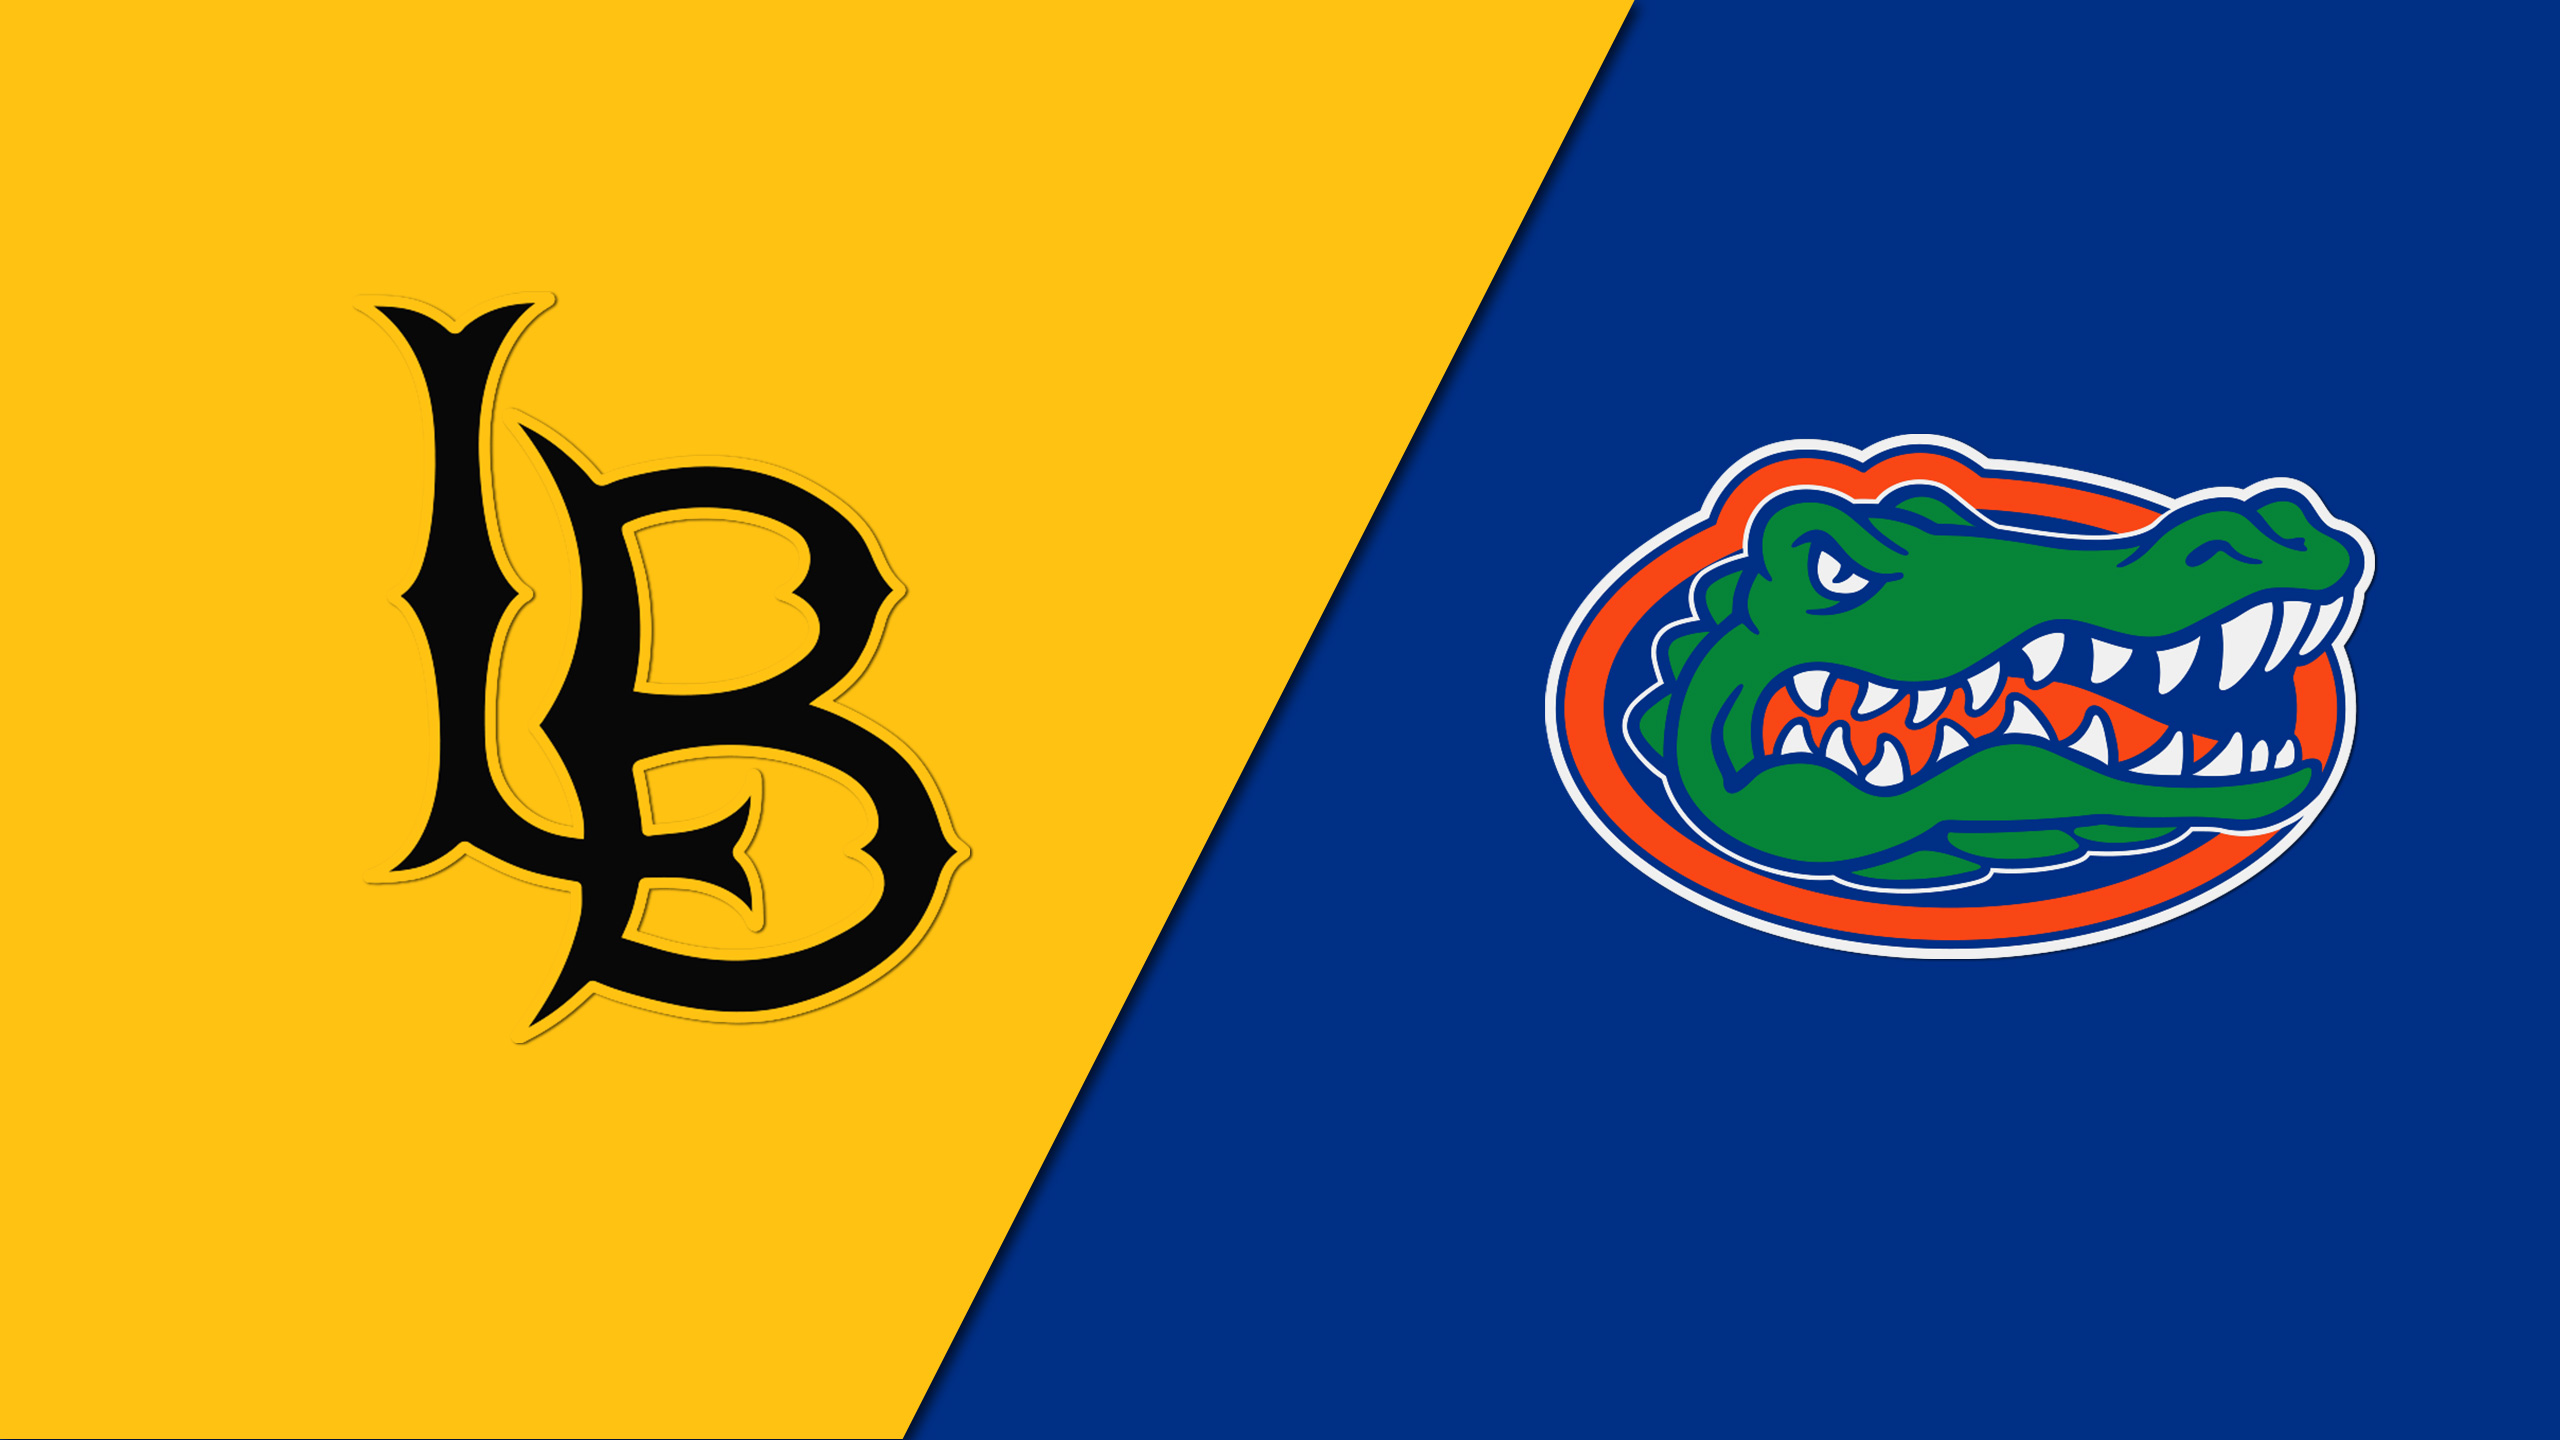 Long Beach State vs. Florida (Baseball)